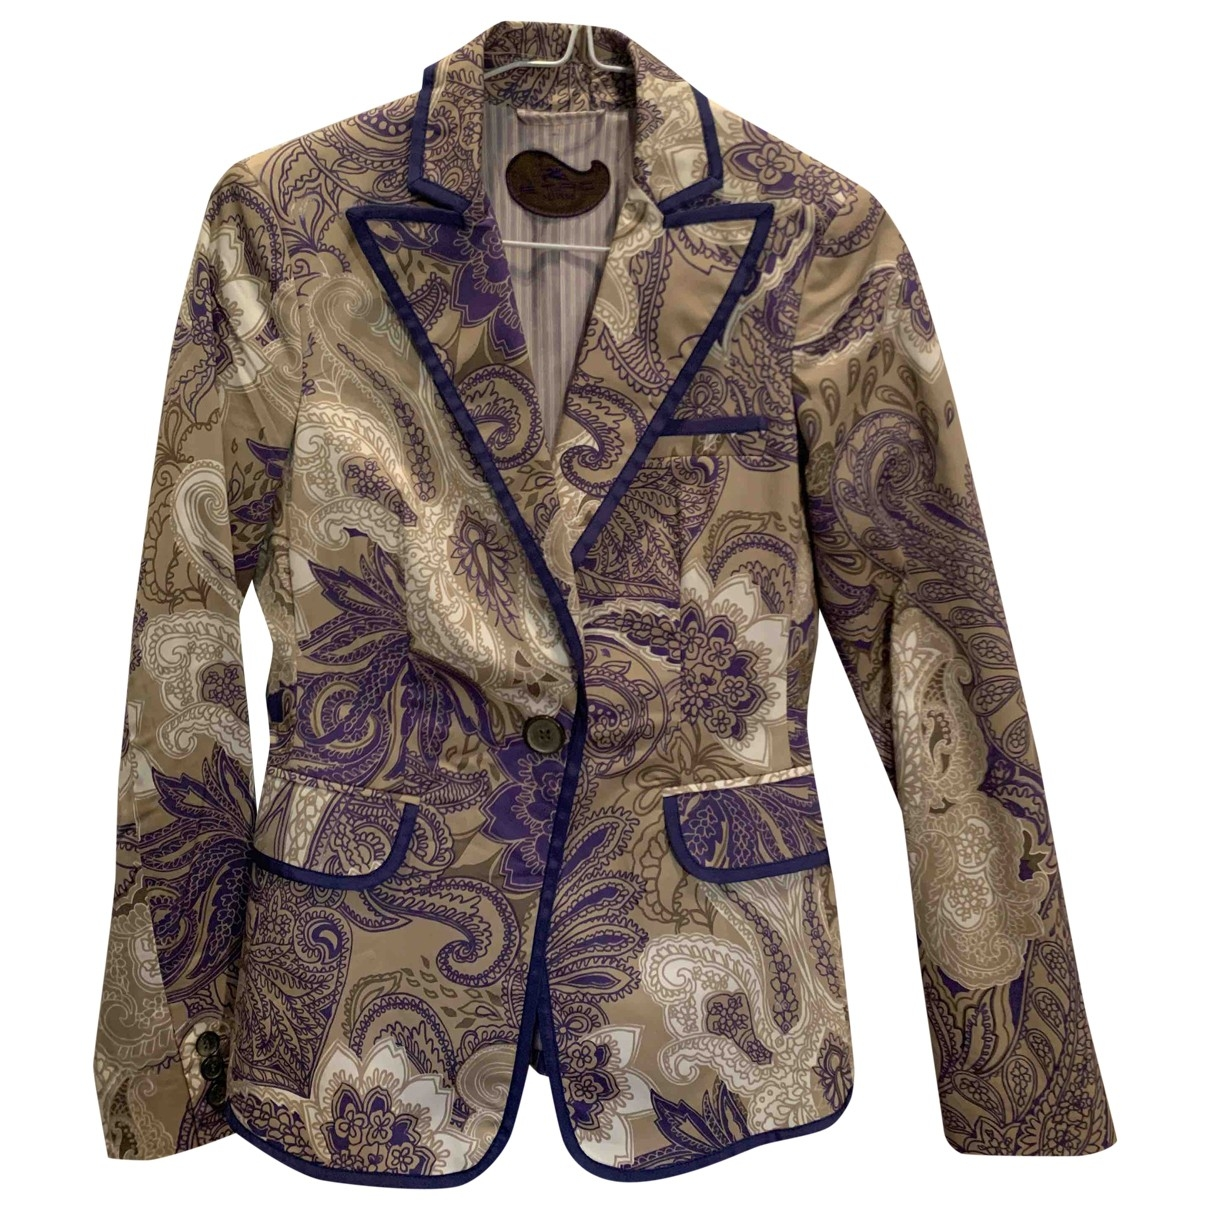 Etro \N Blue Cotton jacket for Women 40 IT